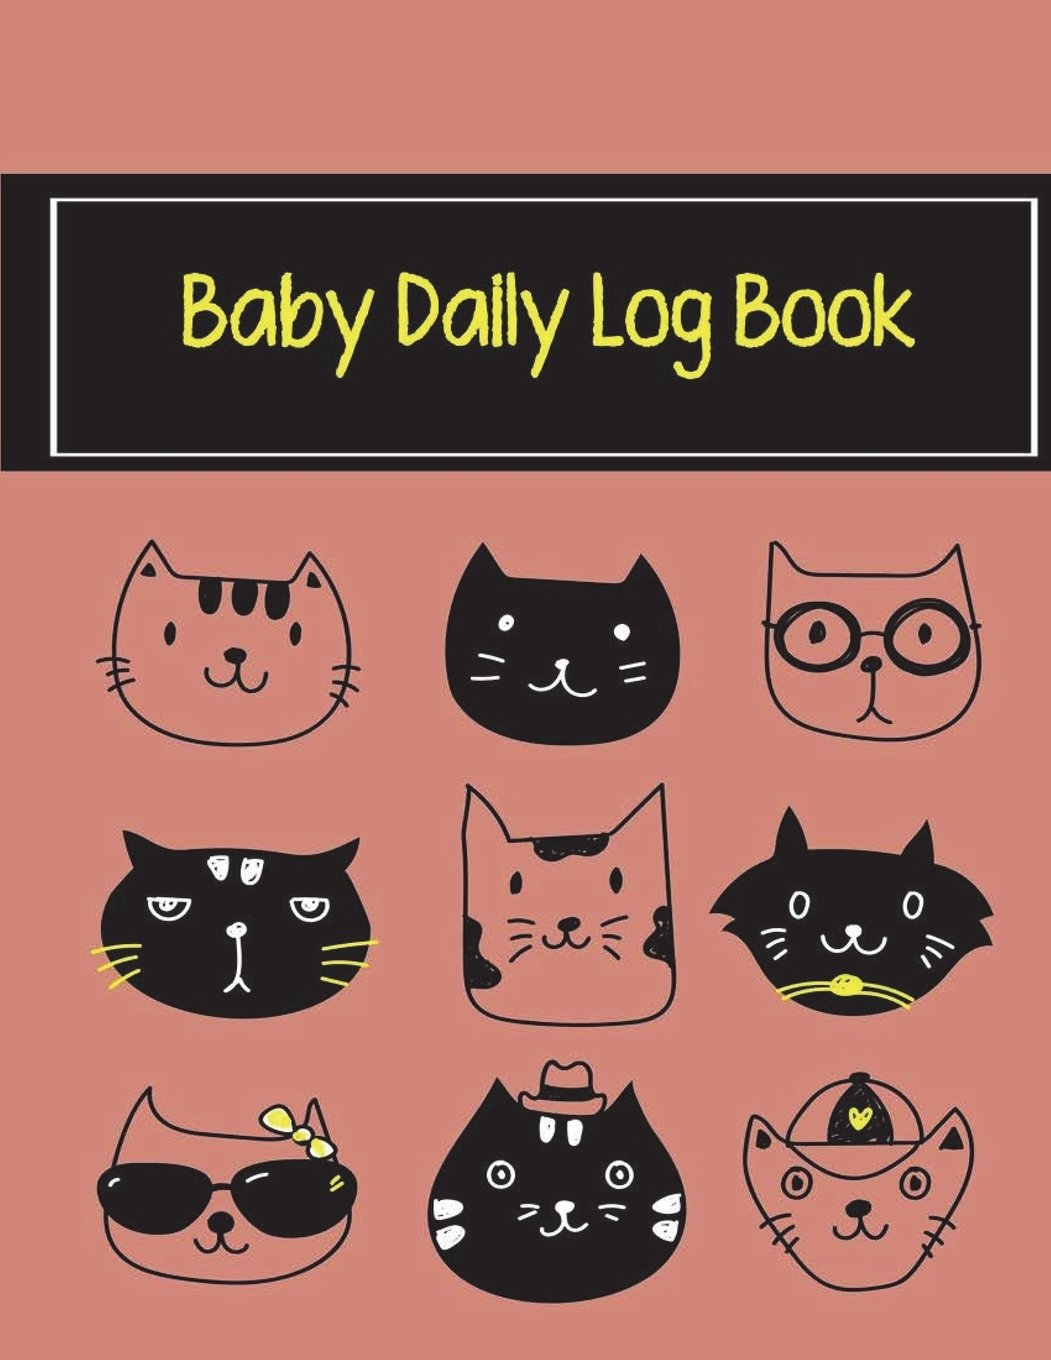 "Download Baby Daily Log Book: Baby's Eat, Sleep & Poop Journal, Log Book, Baby's Daily Log Book, Breastfeeding Journal, Baby Newborn Diapers, Childcare Report Book,Meal Recorder, 120 pages 8.5"" x 11"" PDF"